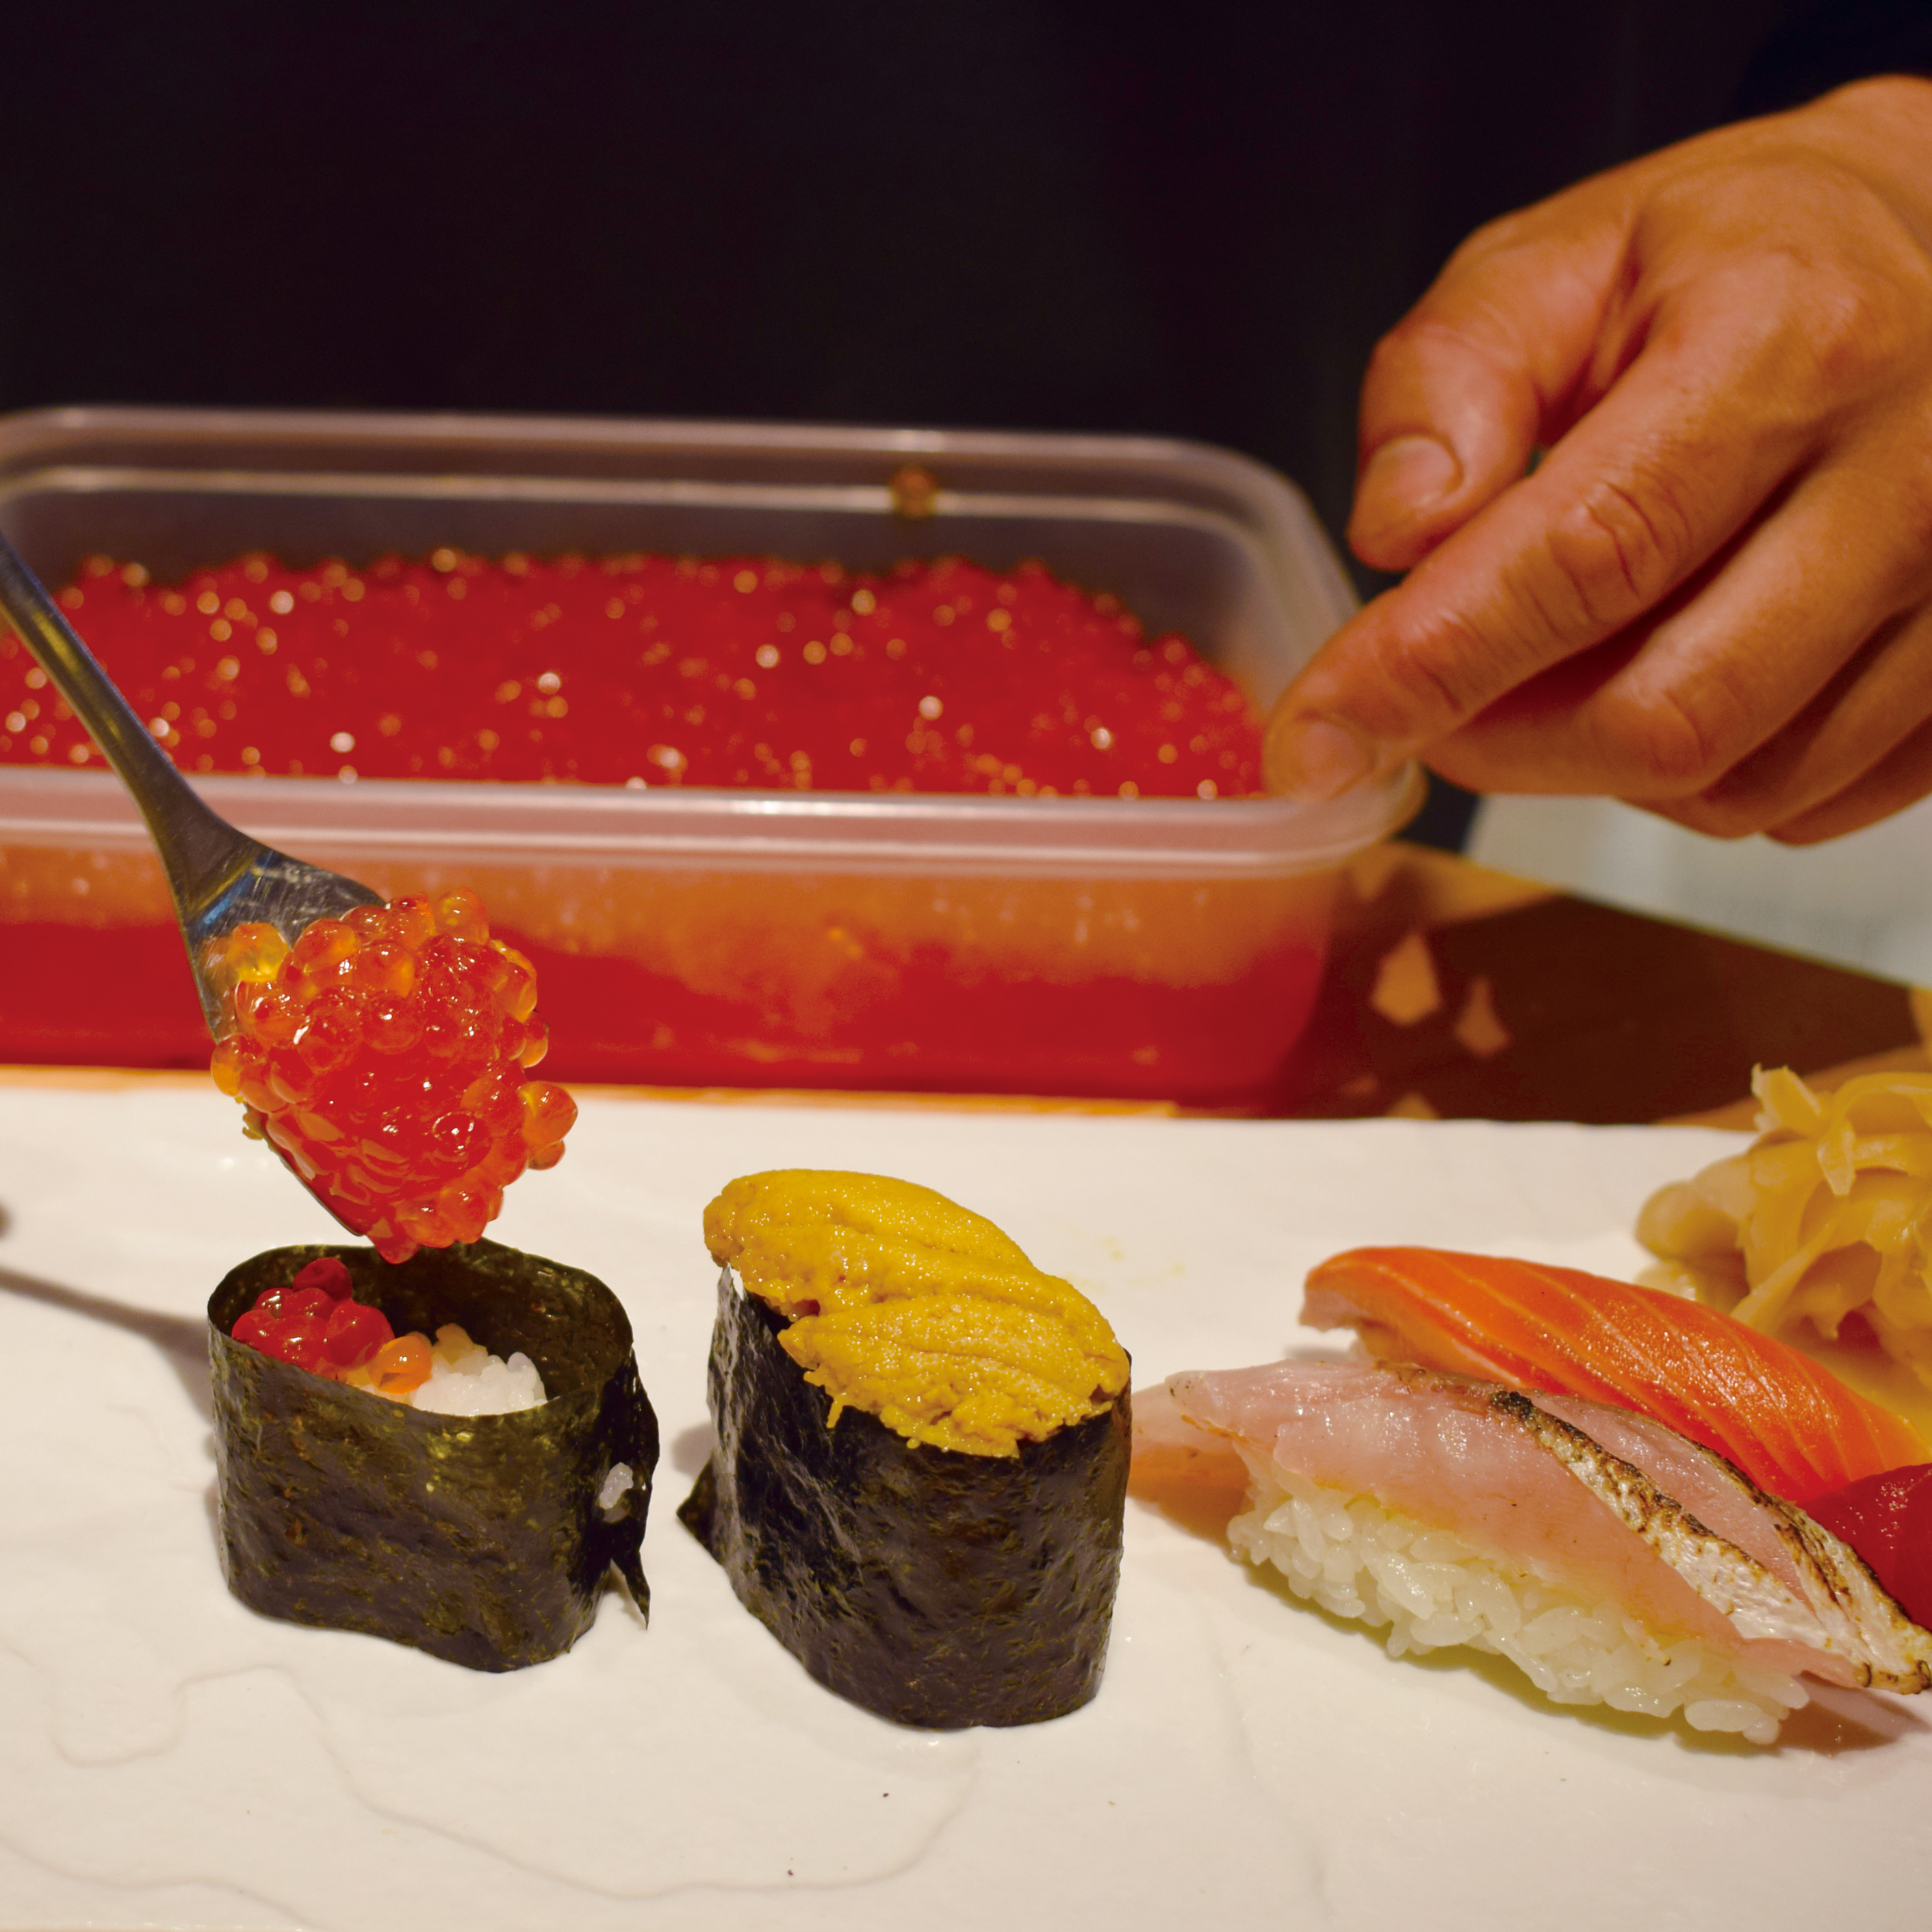 Straight from the head chef! Make your own hand-formed sushi (nigirizushi)